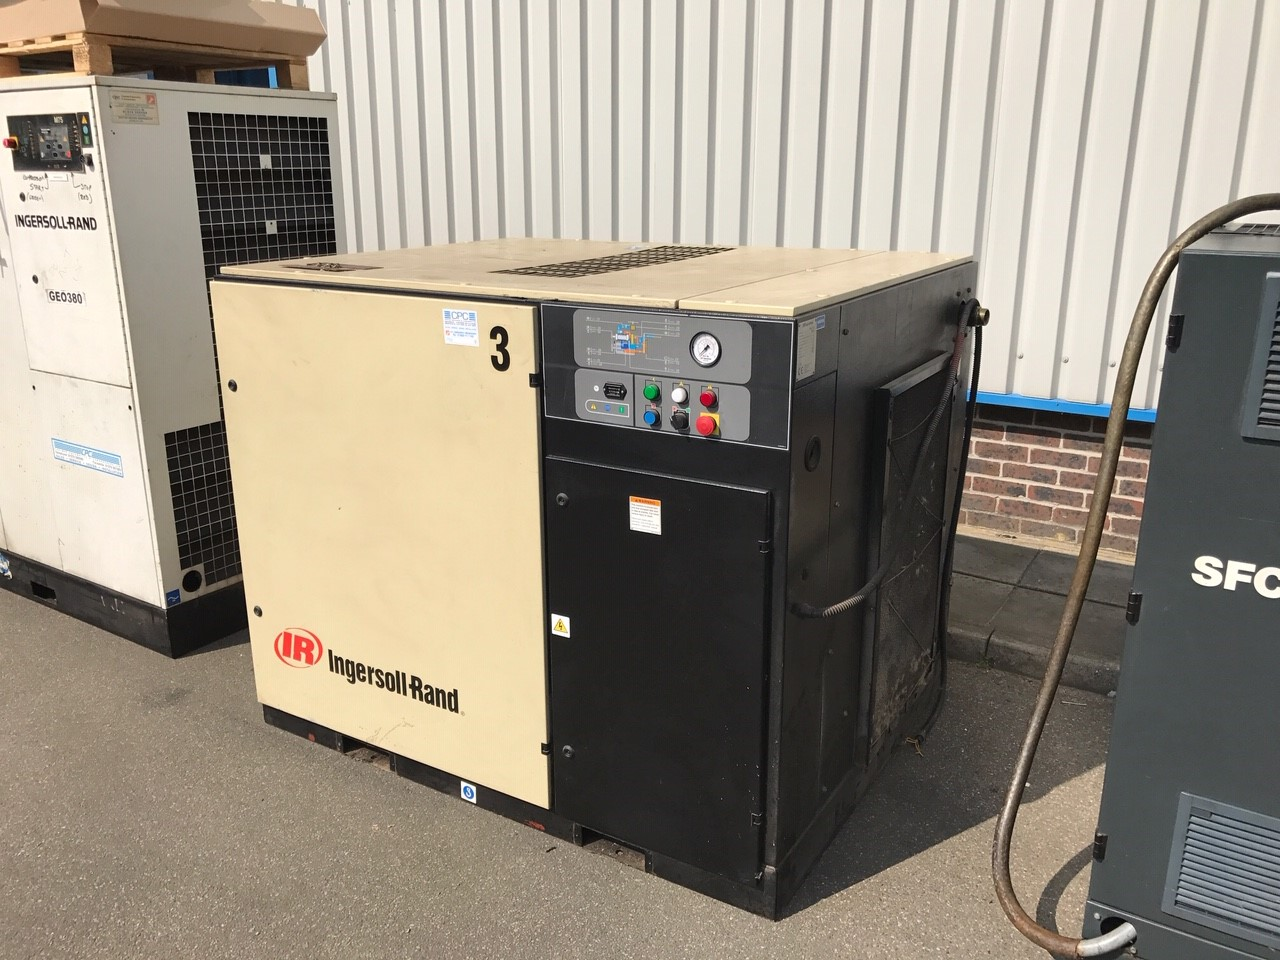 ingersoll rand used compressor for sale